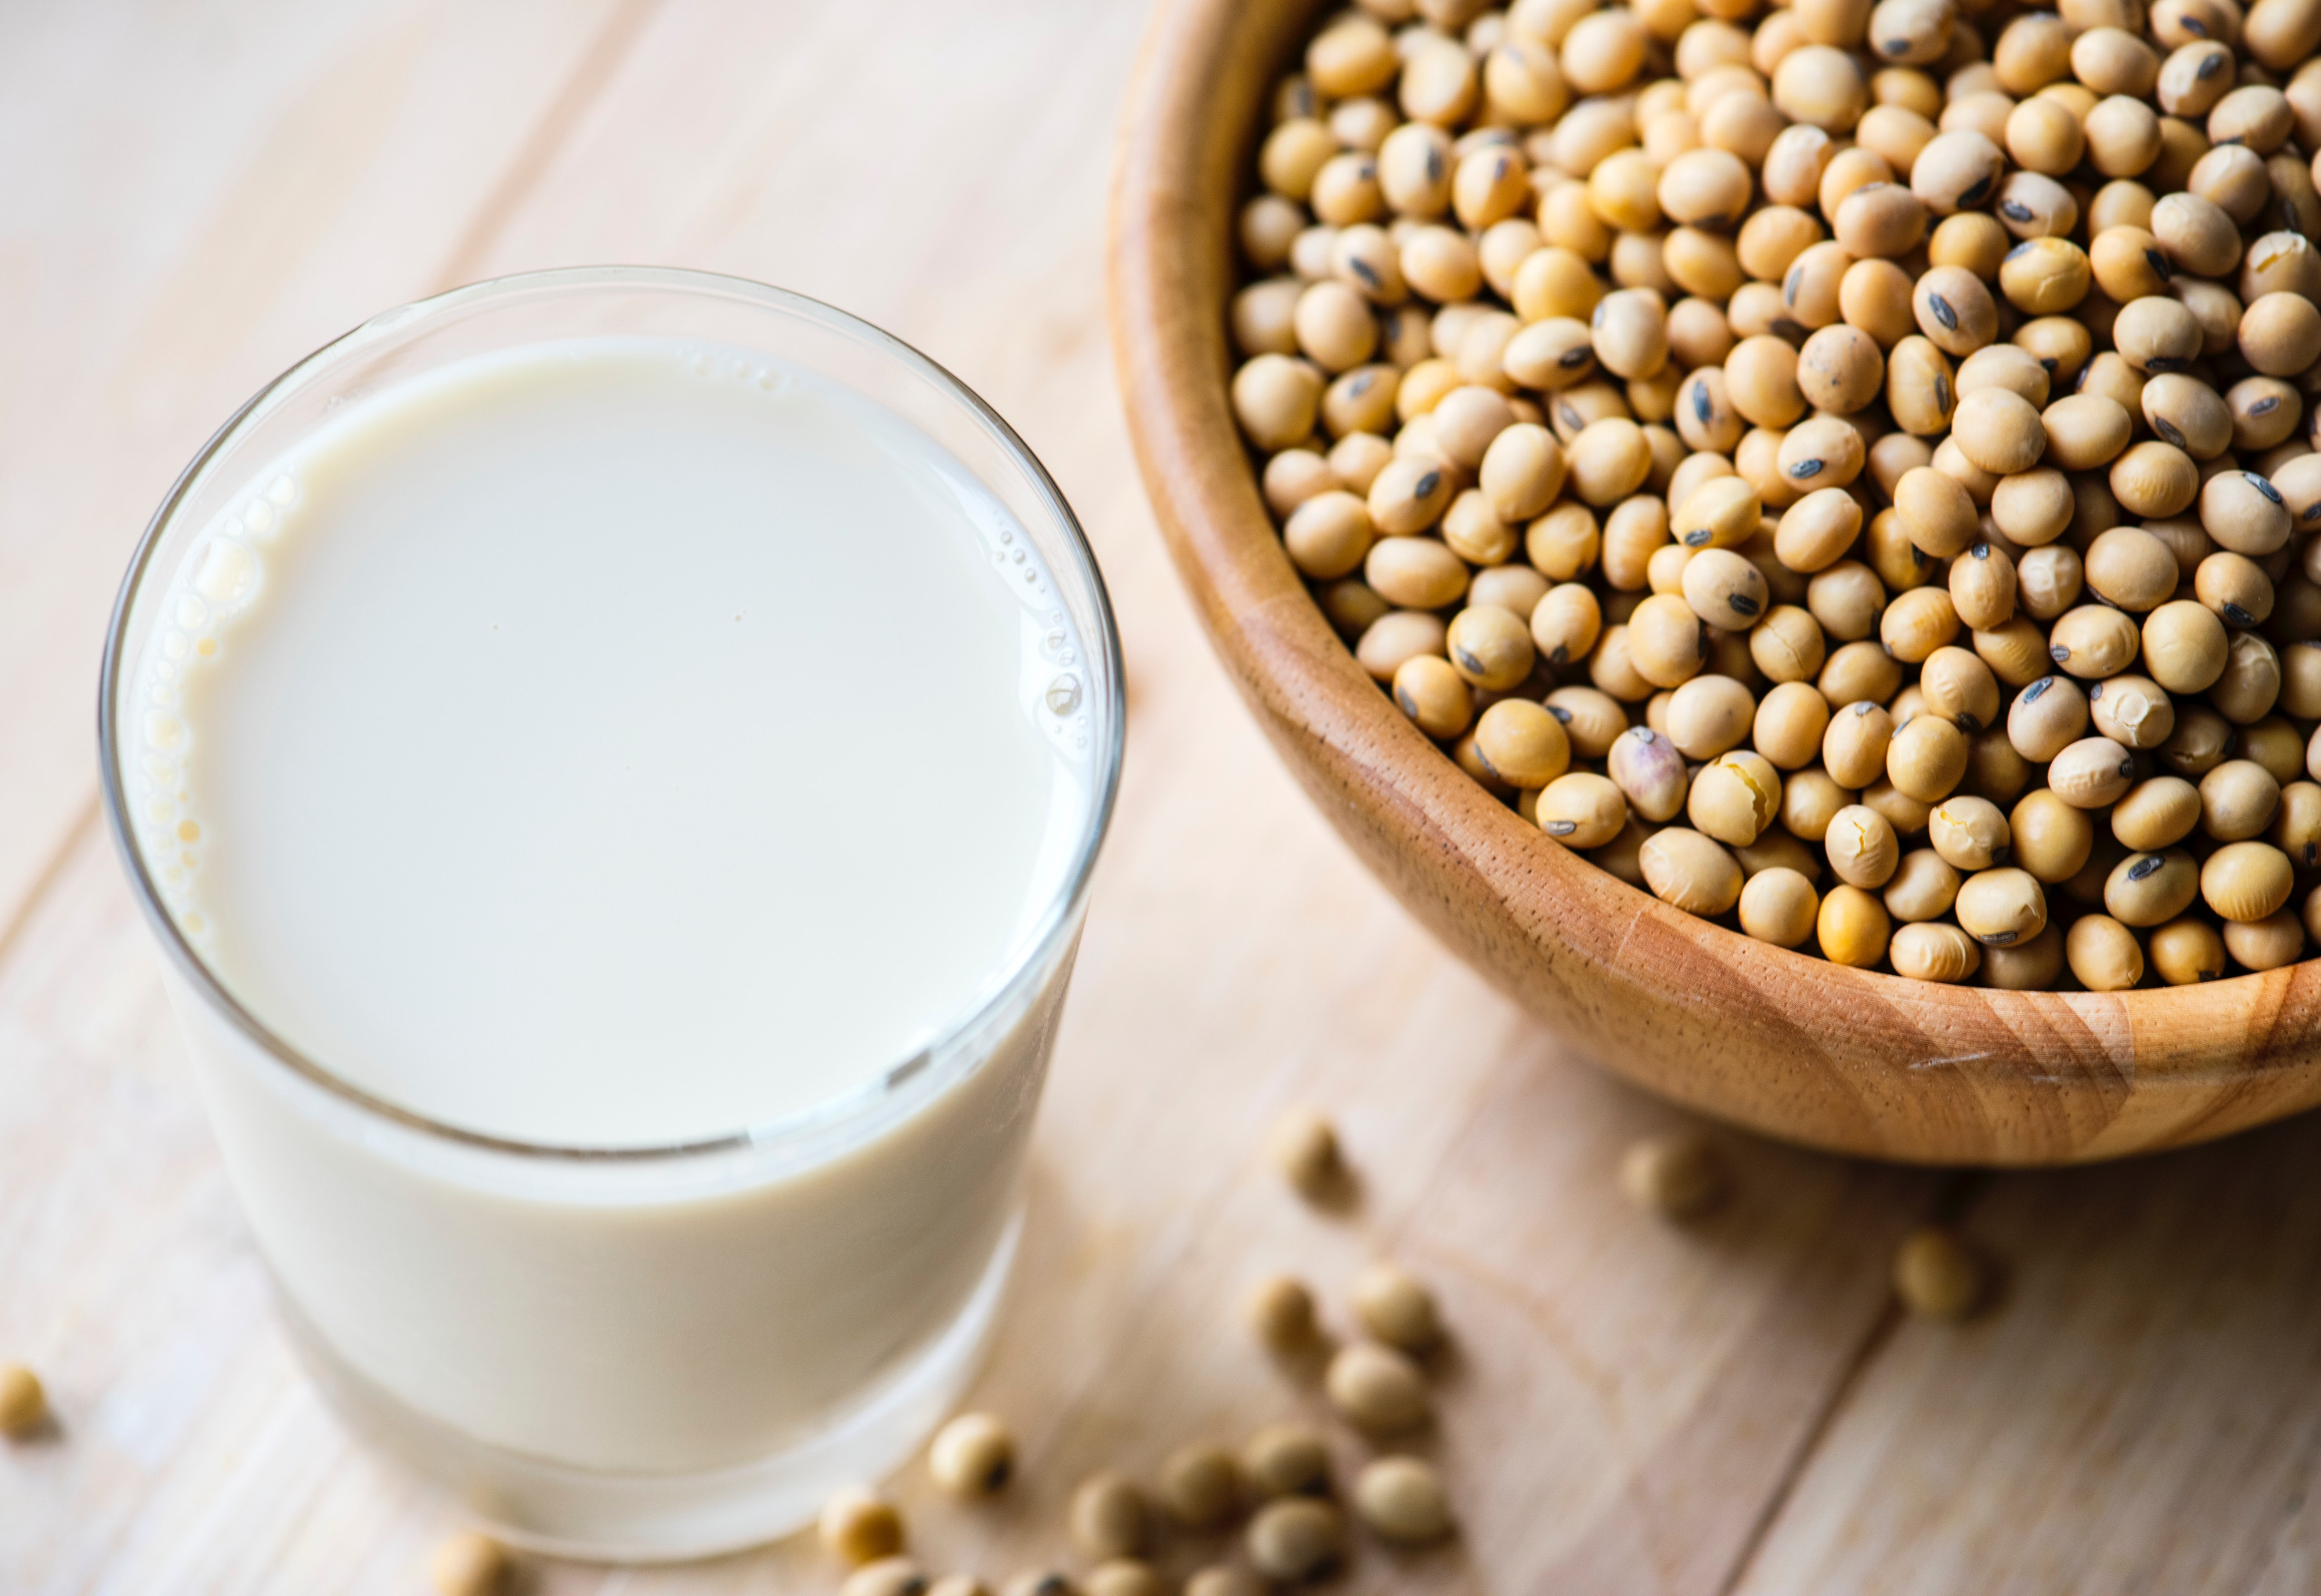 Myths about soy foods